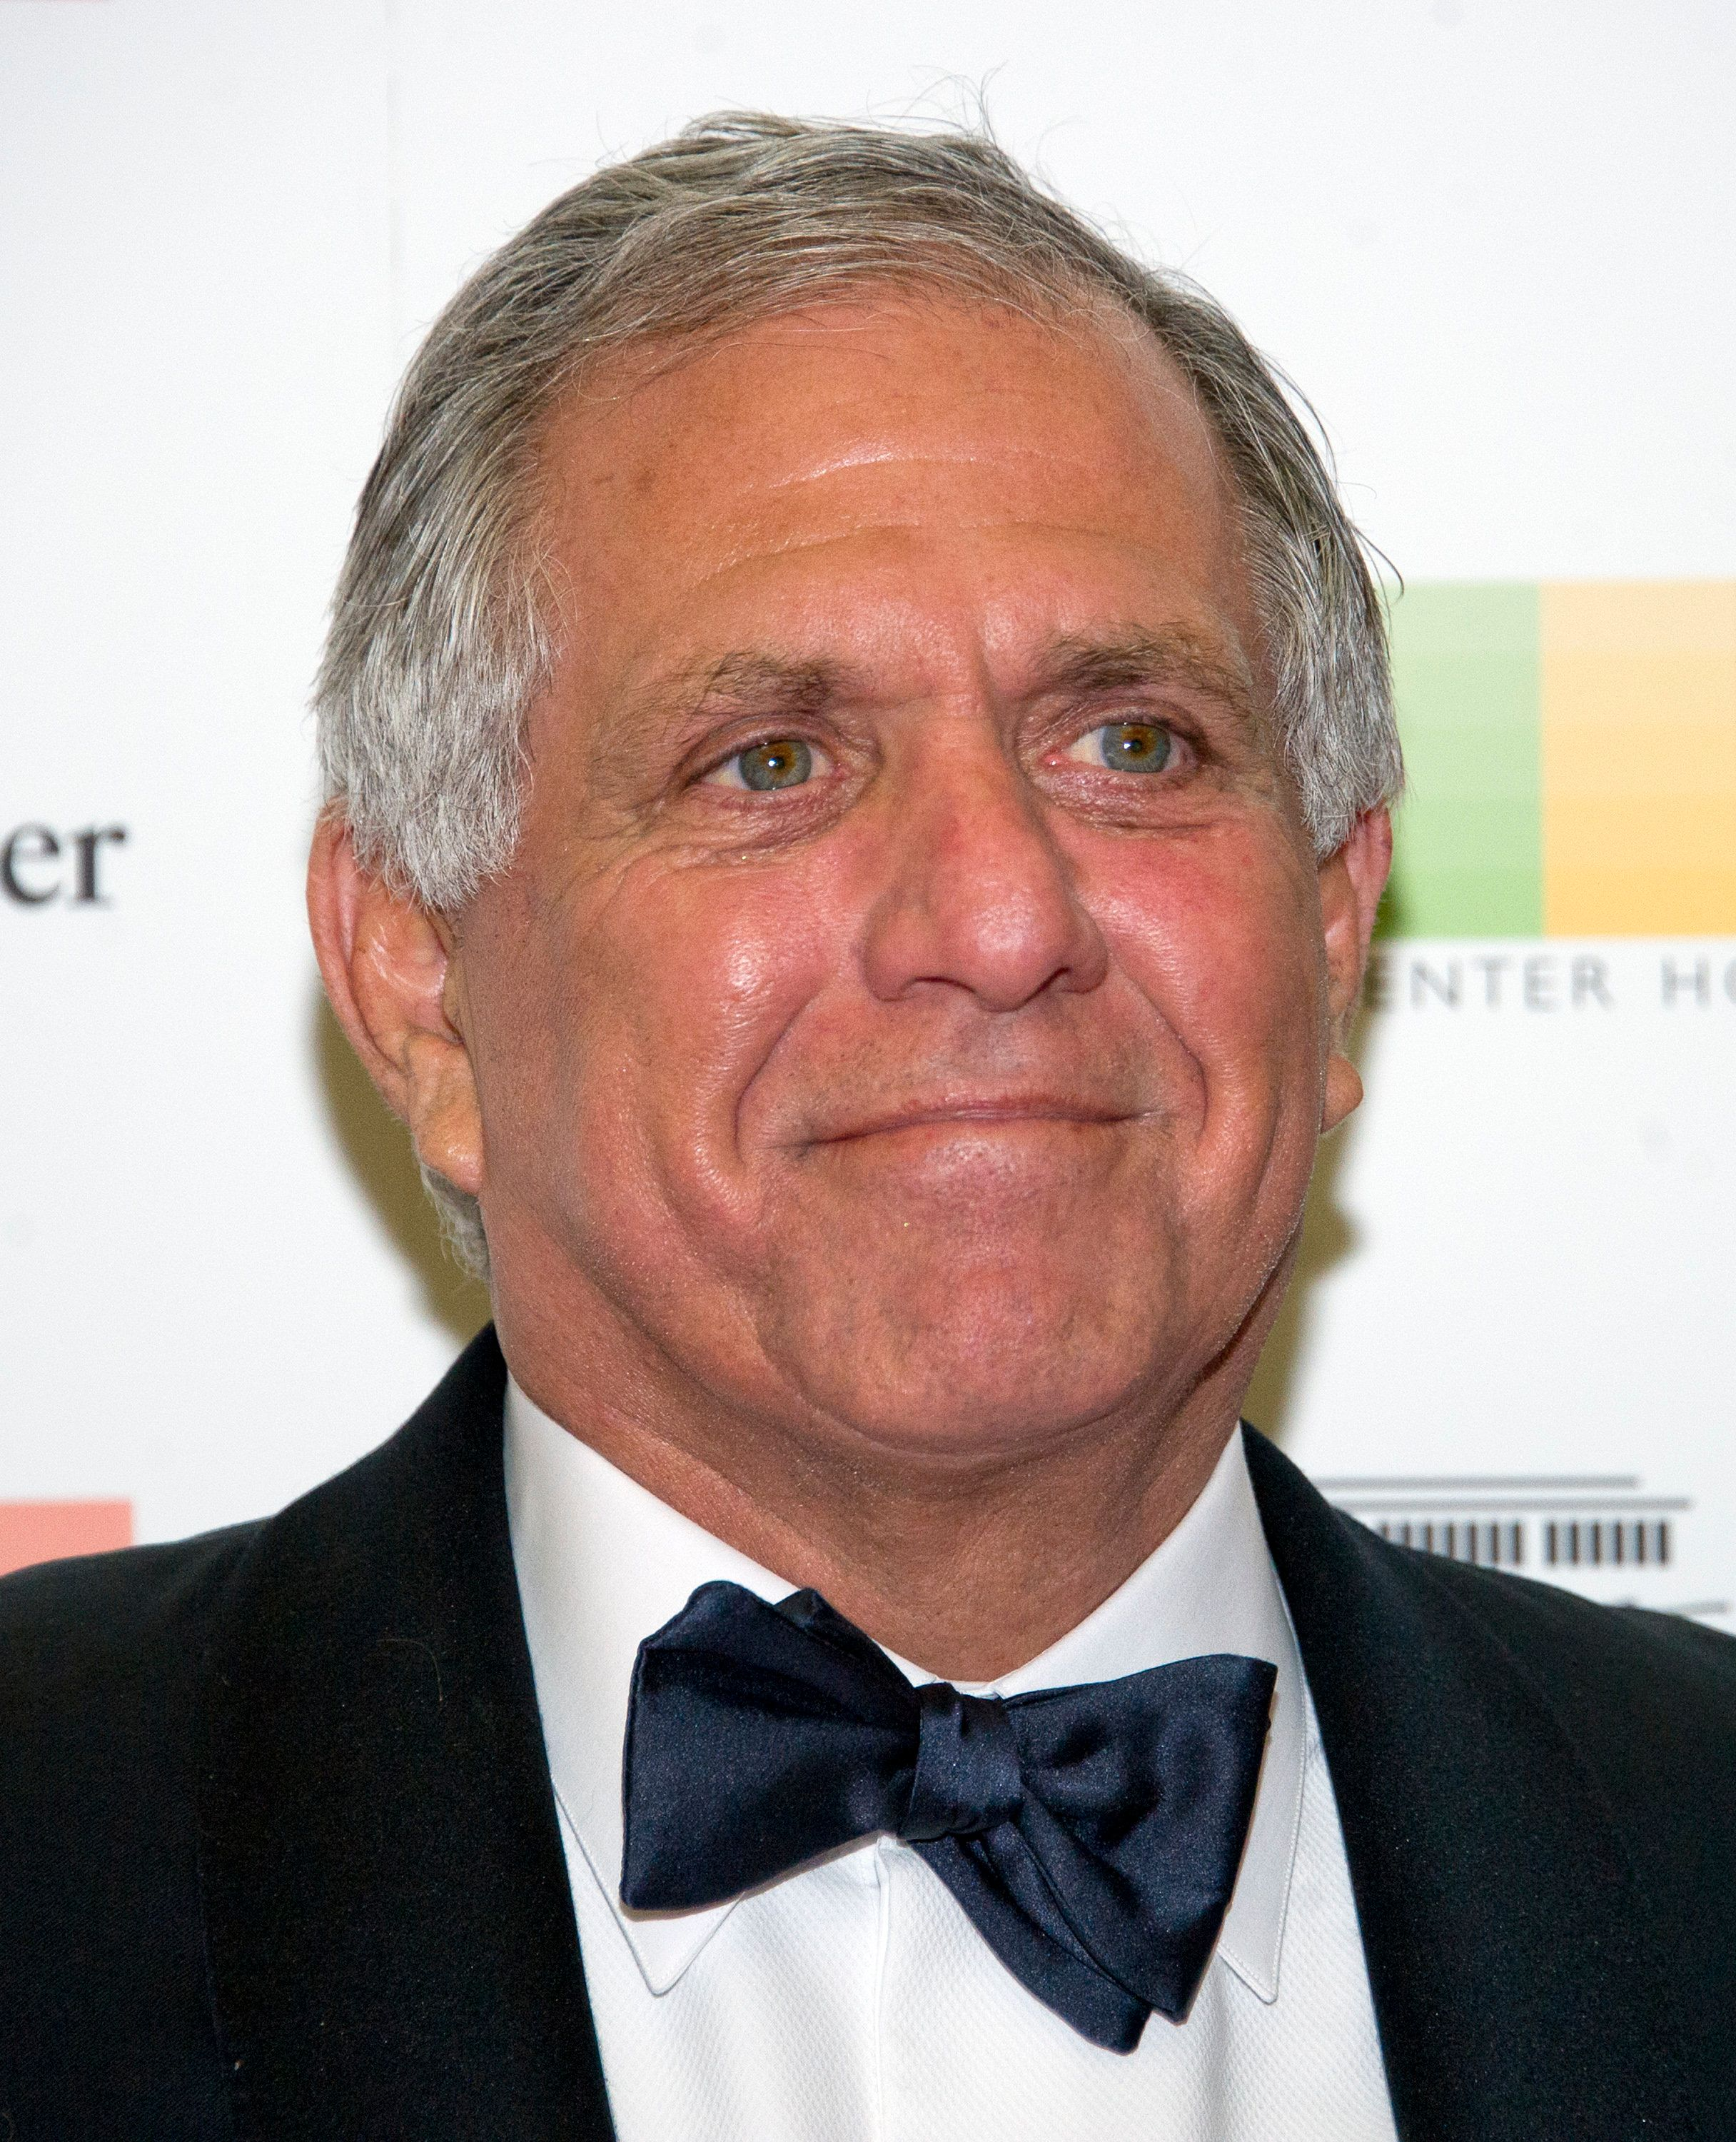 WASHINGTON, DC - DECEMBER 02: Les Moonves, Chairman of the Board, President, and Chief Executive Officer of CBS Corporation, arrives for the formal Artist's Dinner hosted by United States Secretary of State Rex Tillerson in their honor at the US Department of State on December 2, 2017 in Washington, D.C.   From left to right back row: LL Cool J and Lionel Richie  Front row, left to right: Carmen de Lavallade, Norman Lear and Gloria Estefan.  The 2017 honorees are: American dancer and choreographer Carmen de Lavallade; Cuban American singer-songwriter and actress Gloria Estefan; American hip hop artist and entertainment icon LL COOL J; American television writer and producer Norman Lear; and American musician and record producer Lionel Richie.   (Photo by Ron Sachs - Pool/Getty Images)